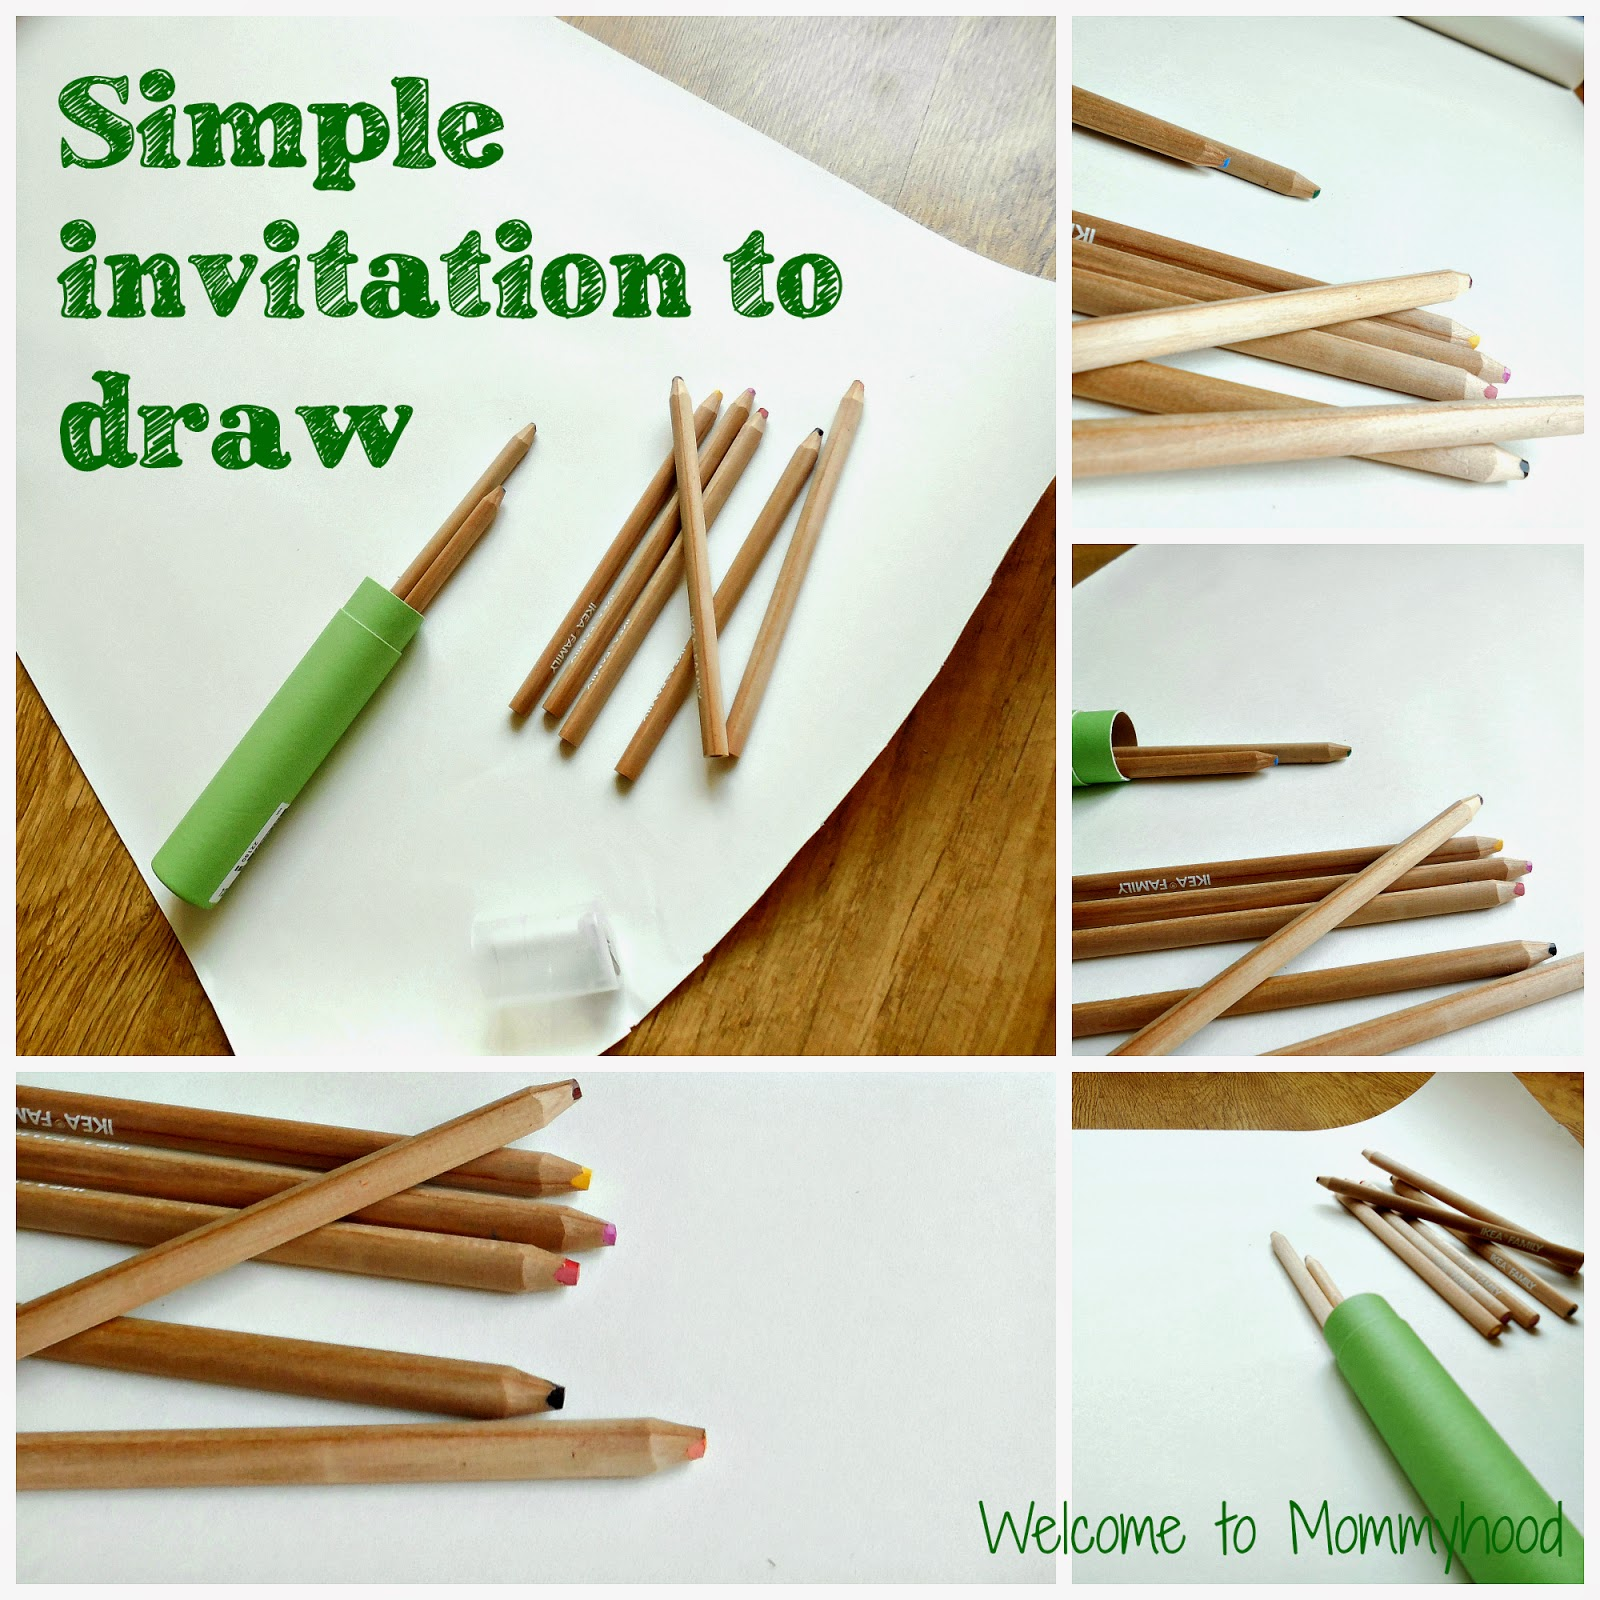 Art activities for toddlers: a simple invitation to draw {Welcome to Mommyhood} #ArtActivitiesForToddlers